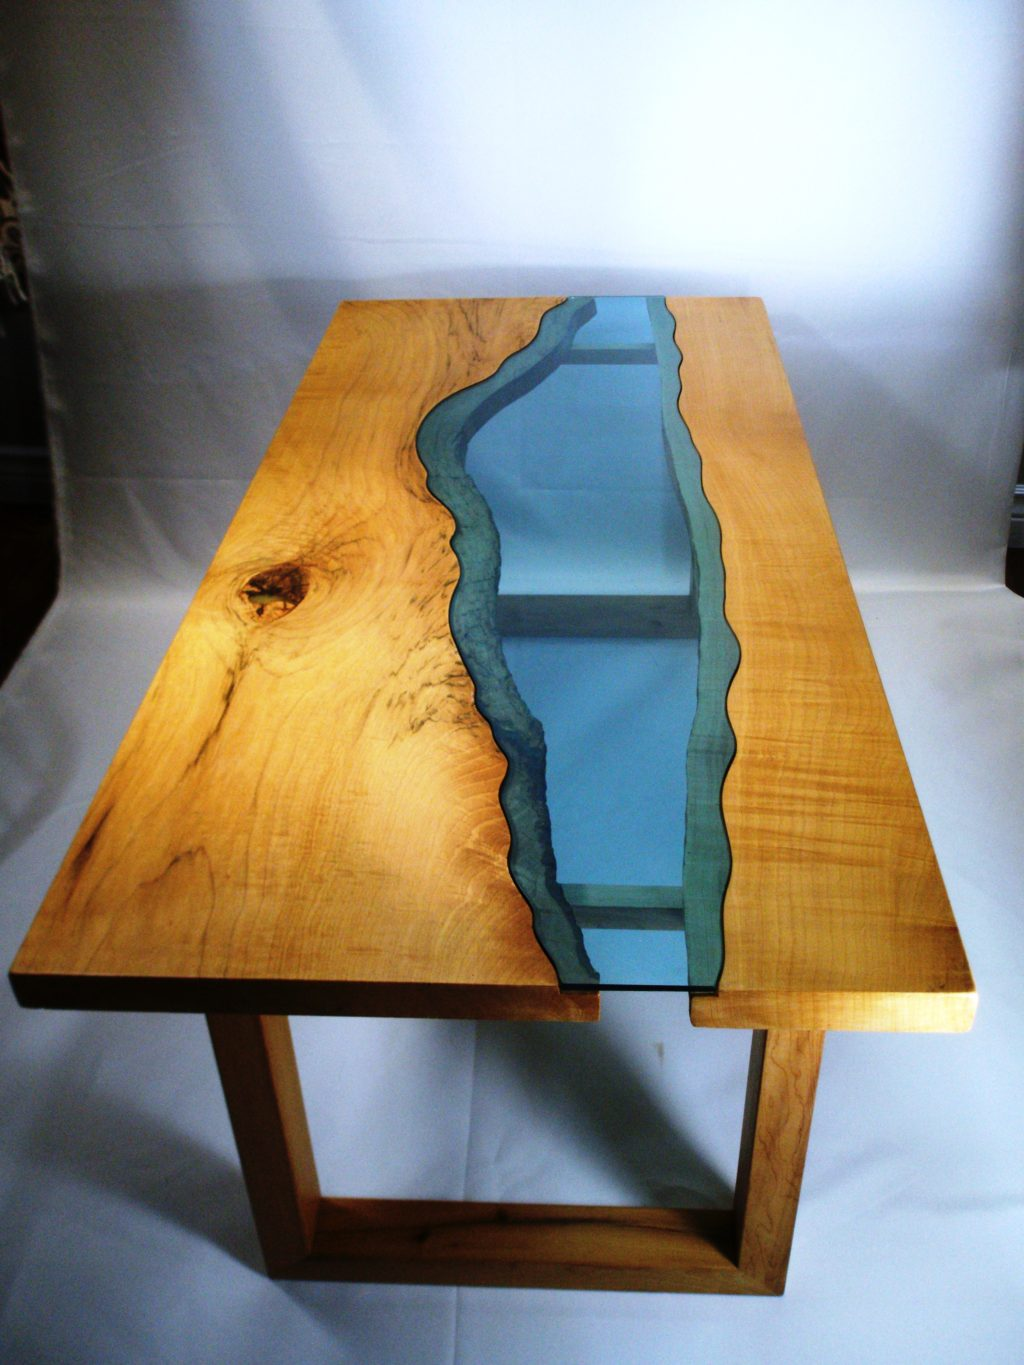 1-River-table.jpg